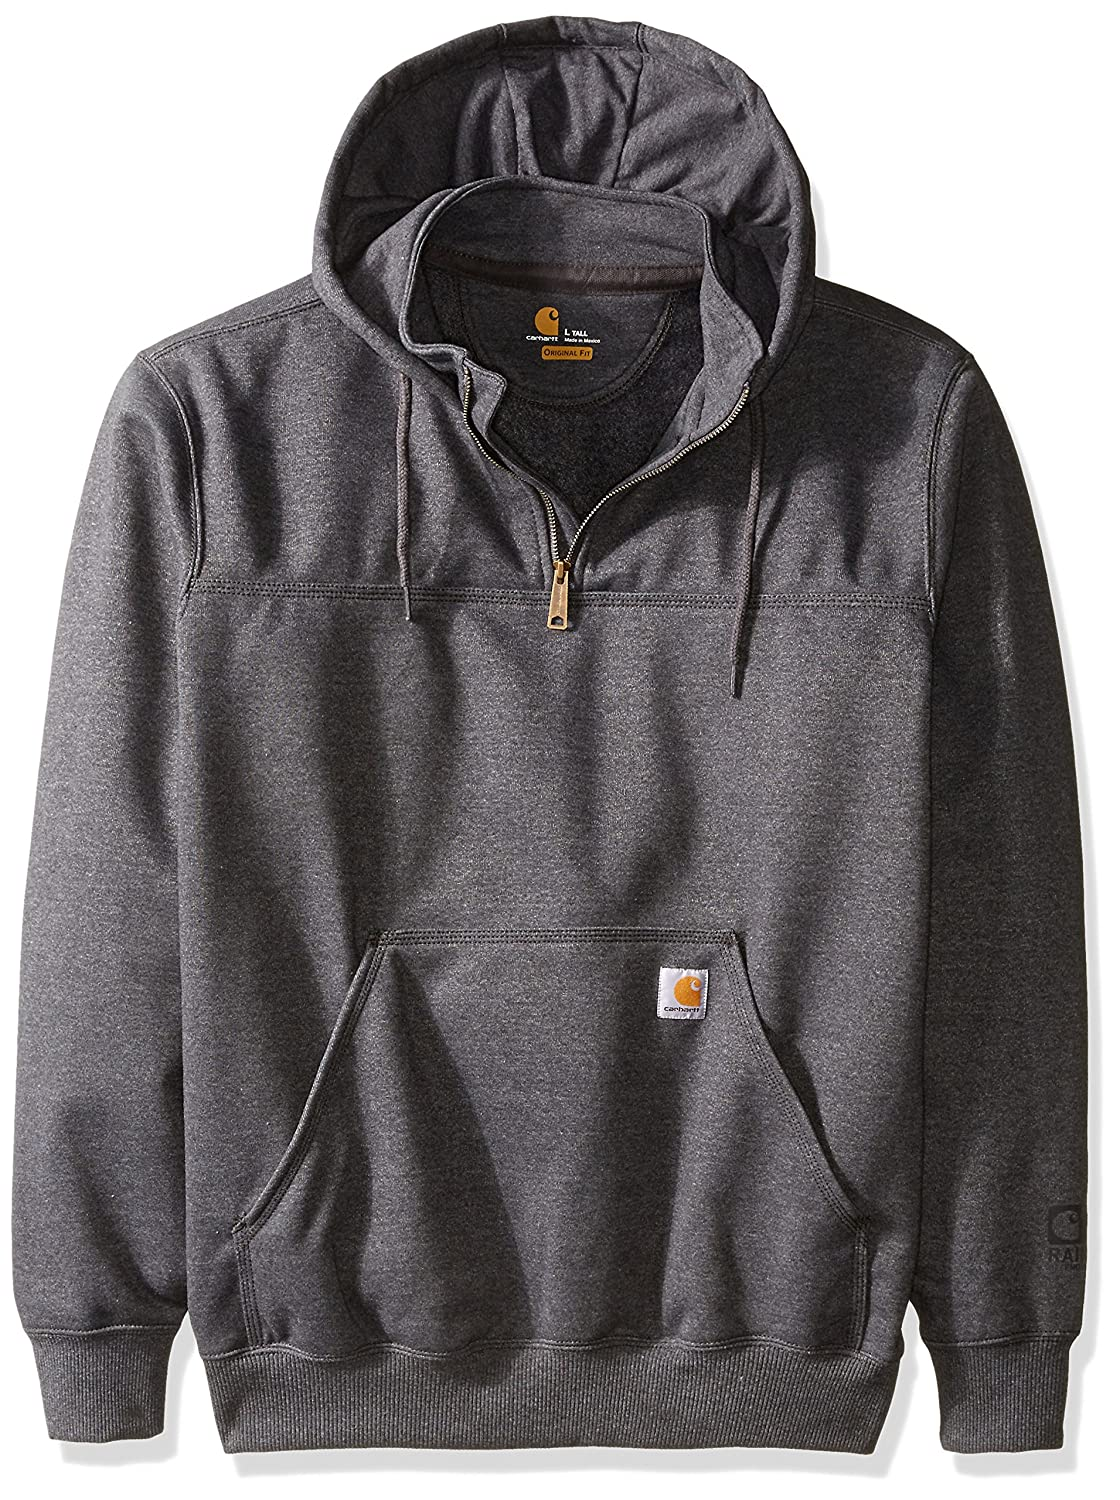 Carhartt Men's Big & Tall Rain Defender Paxton Heavy Weight Hooded Zip Mock Sweatshirt Carhartt Sportswear - Mens 100617B